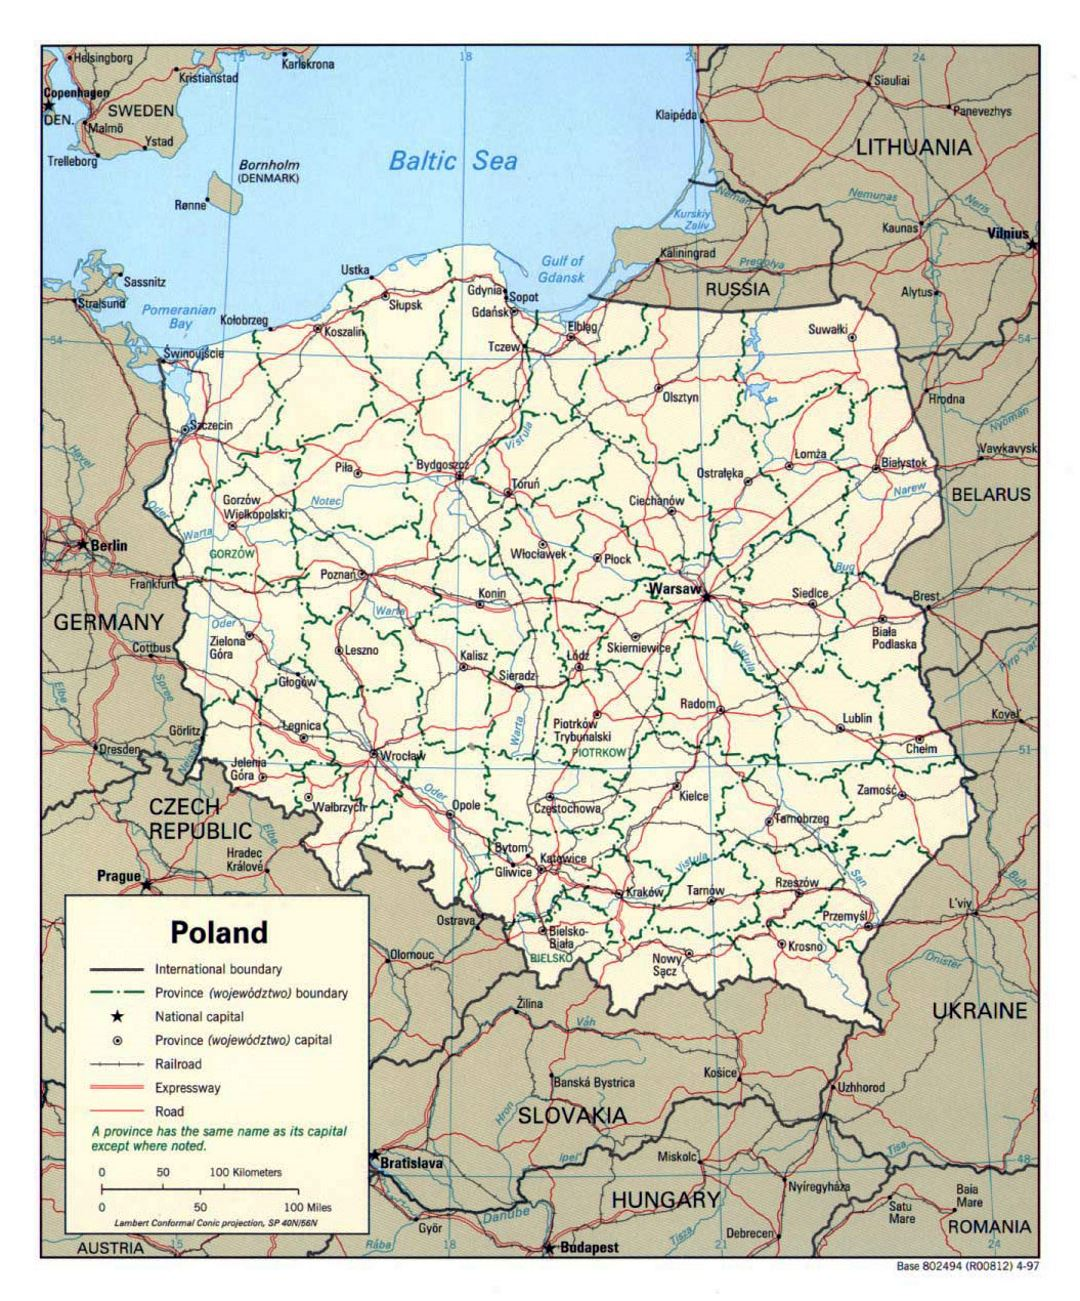 Detailed political and administrative map of Poland - 1997